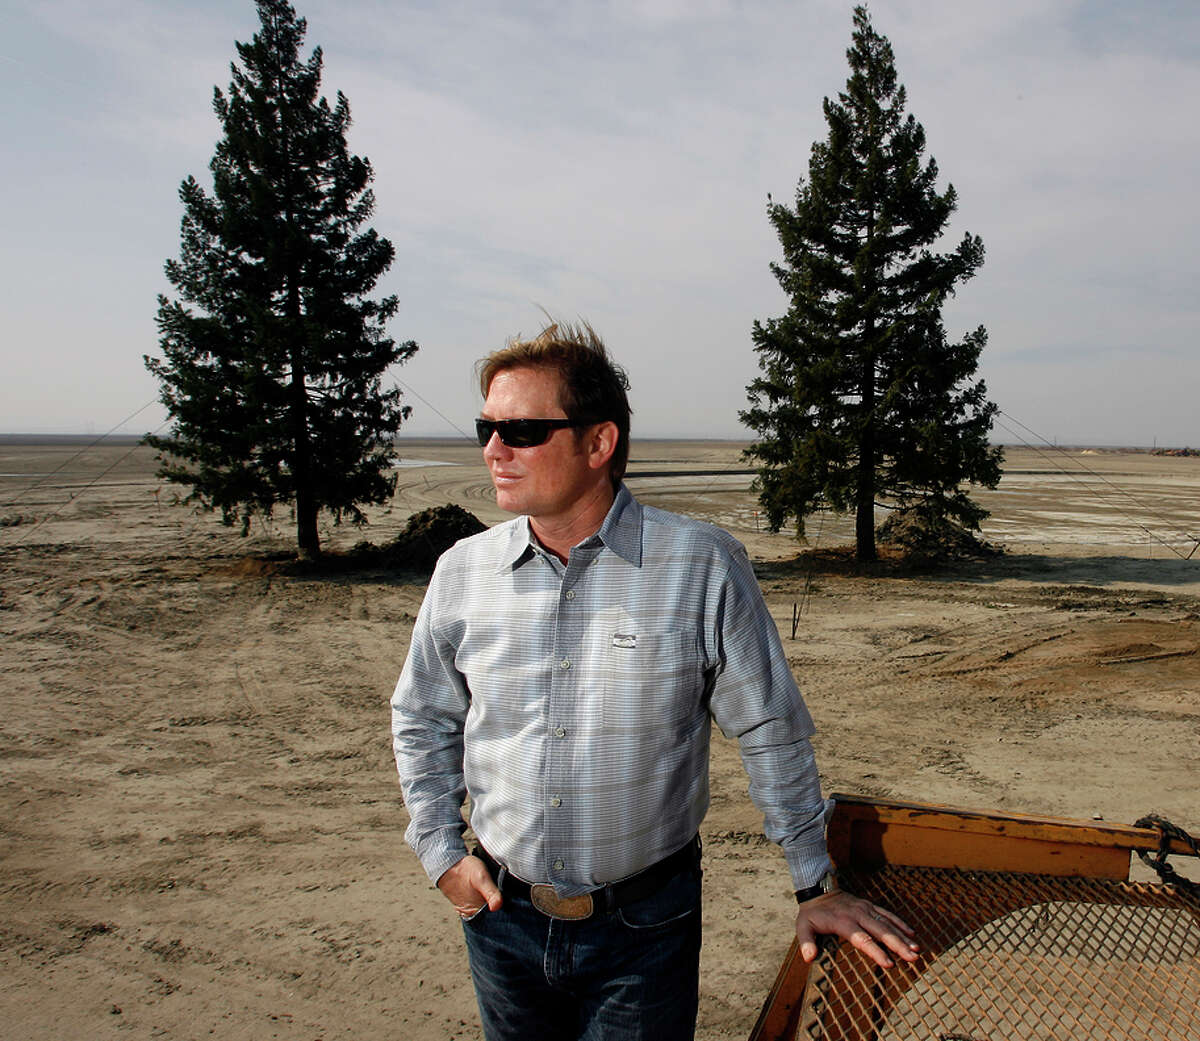 Developer Quay Hays has long planned to build a high-tech, solar-powered town on ranch land in the Central Valley.